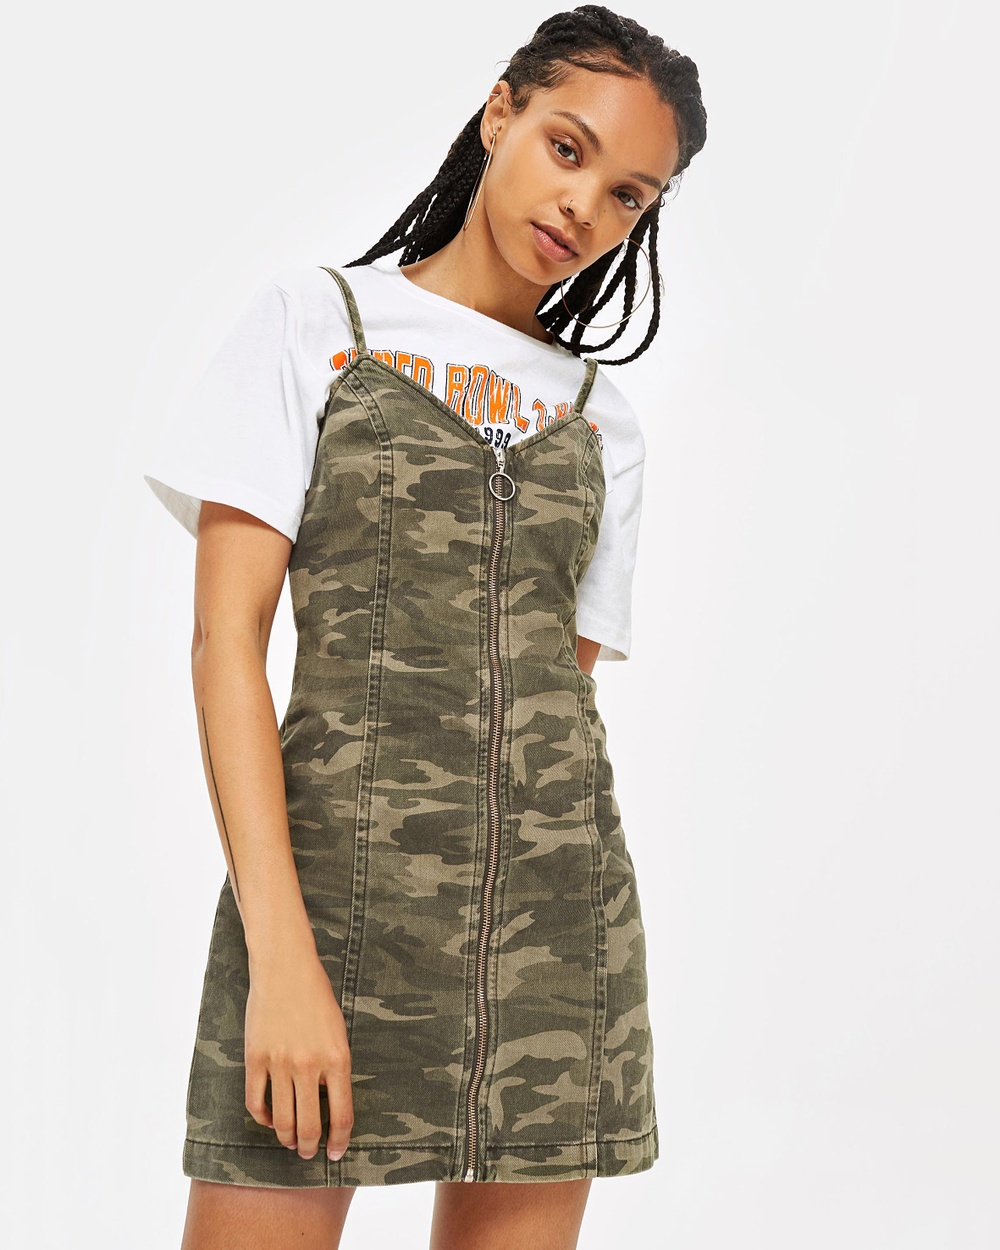 TOPSHOP Camo Zip Up Denim Dress Dresses Green Camo Zip Up Denim Dress